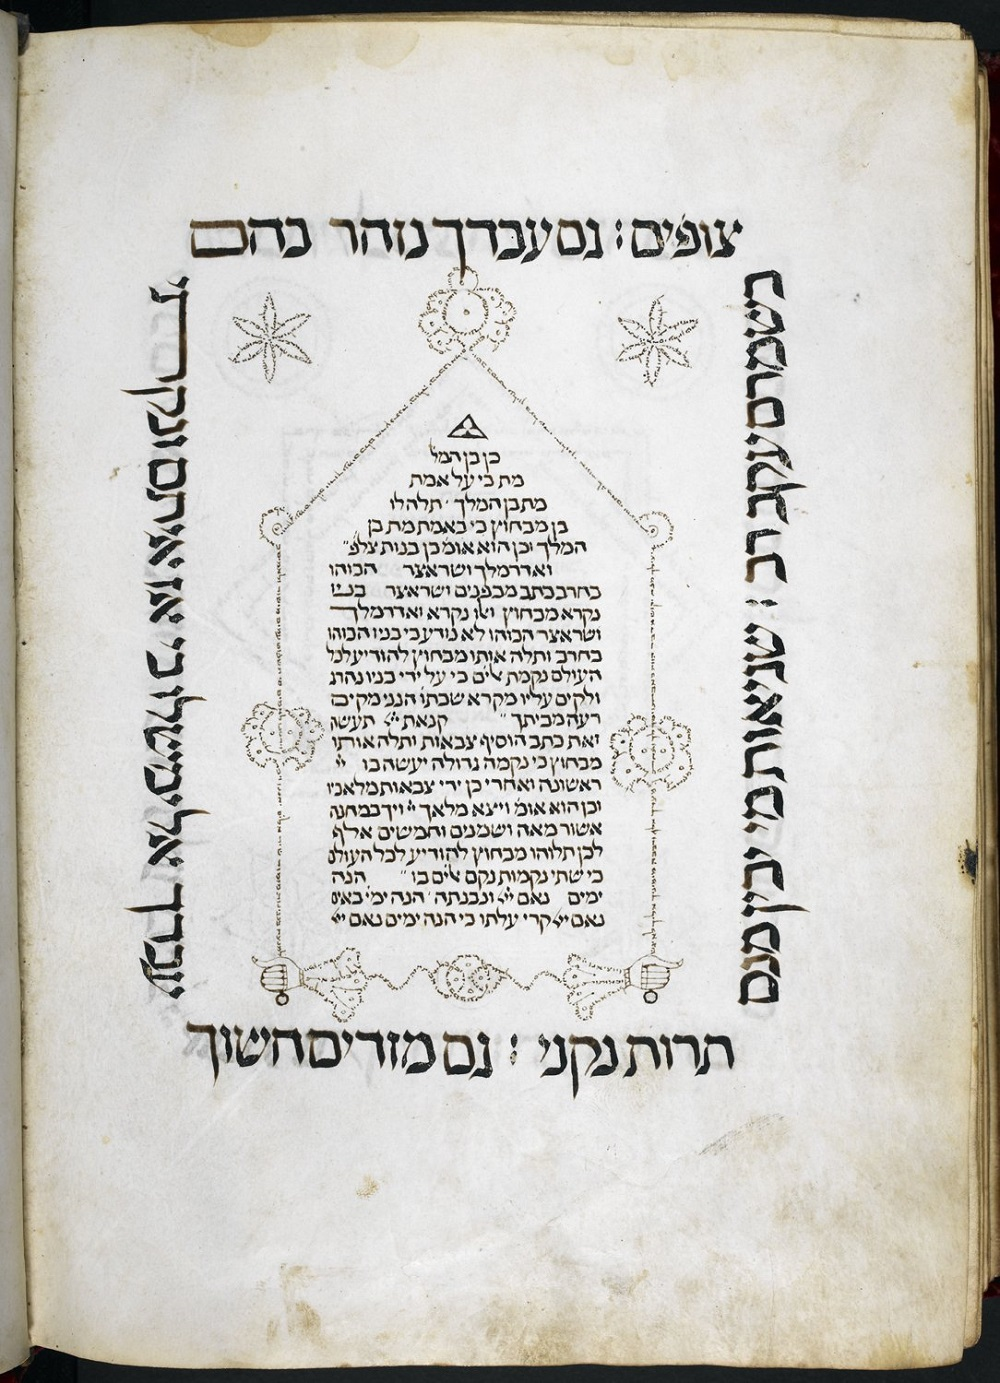 Micrography in a late medieval Spanish Pentateuch | British Library Additional 15306 f. 194v |  Image source